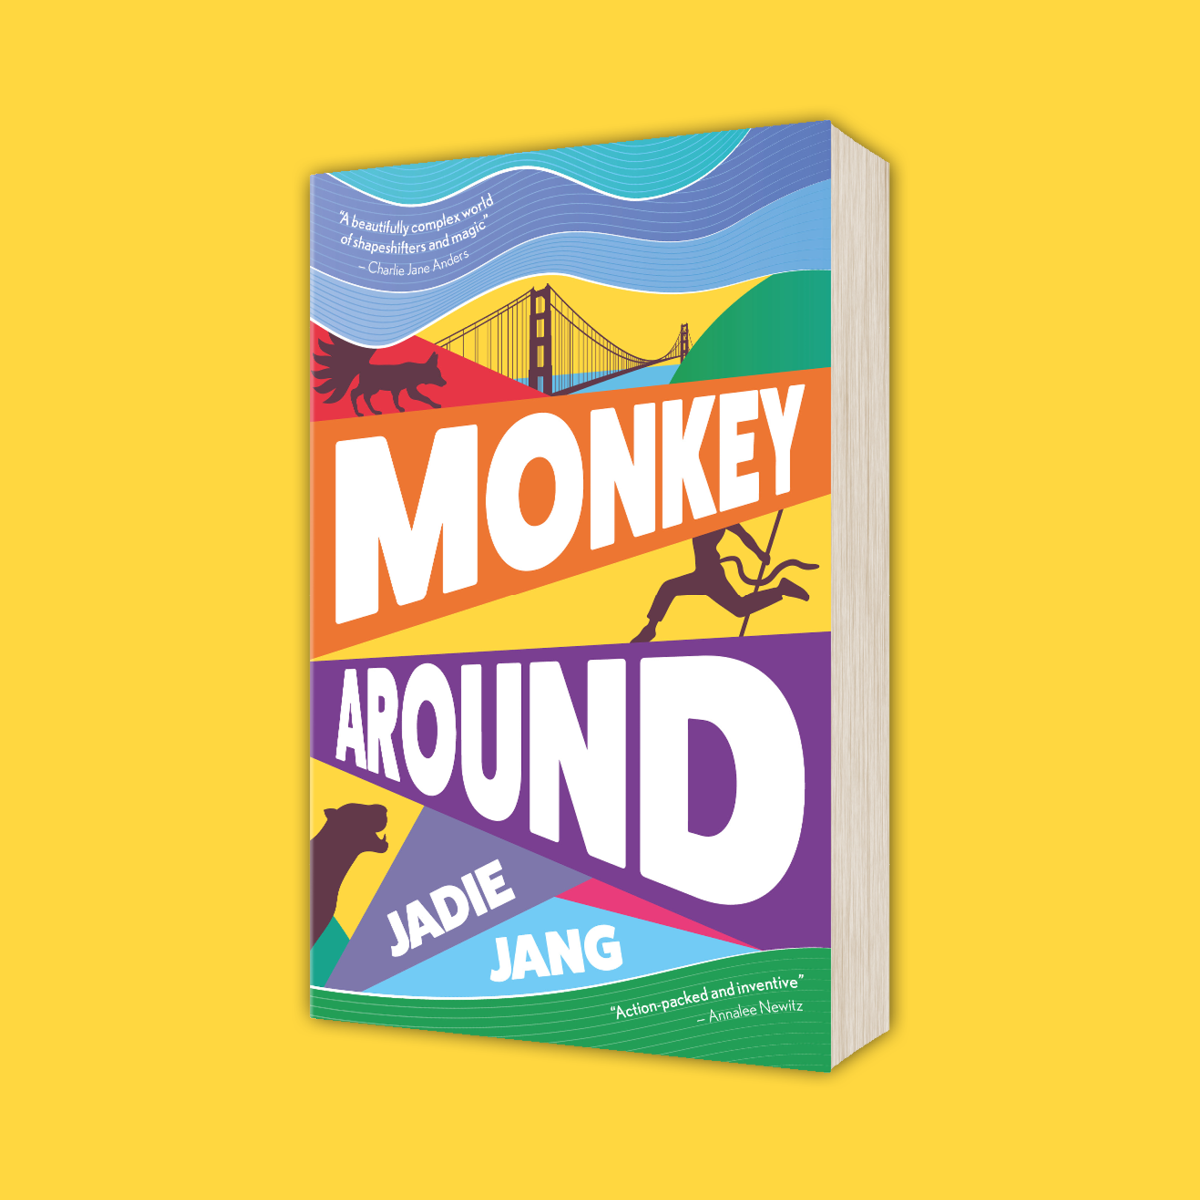 OUT NOW: Monkey Around by Jadie Jang!